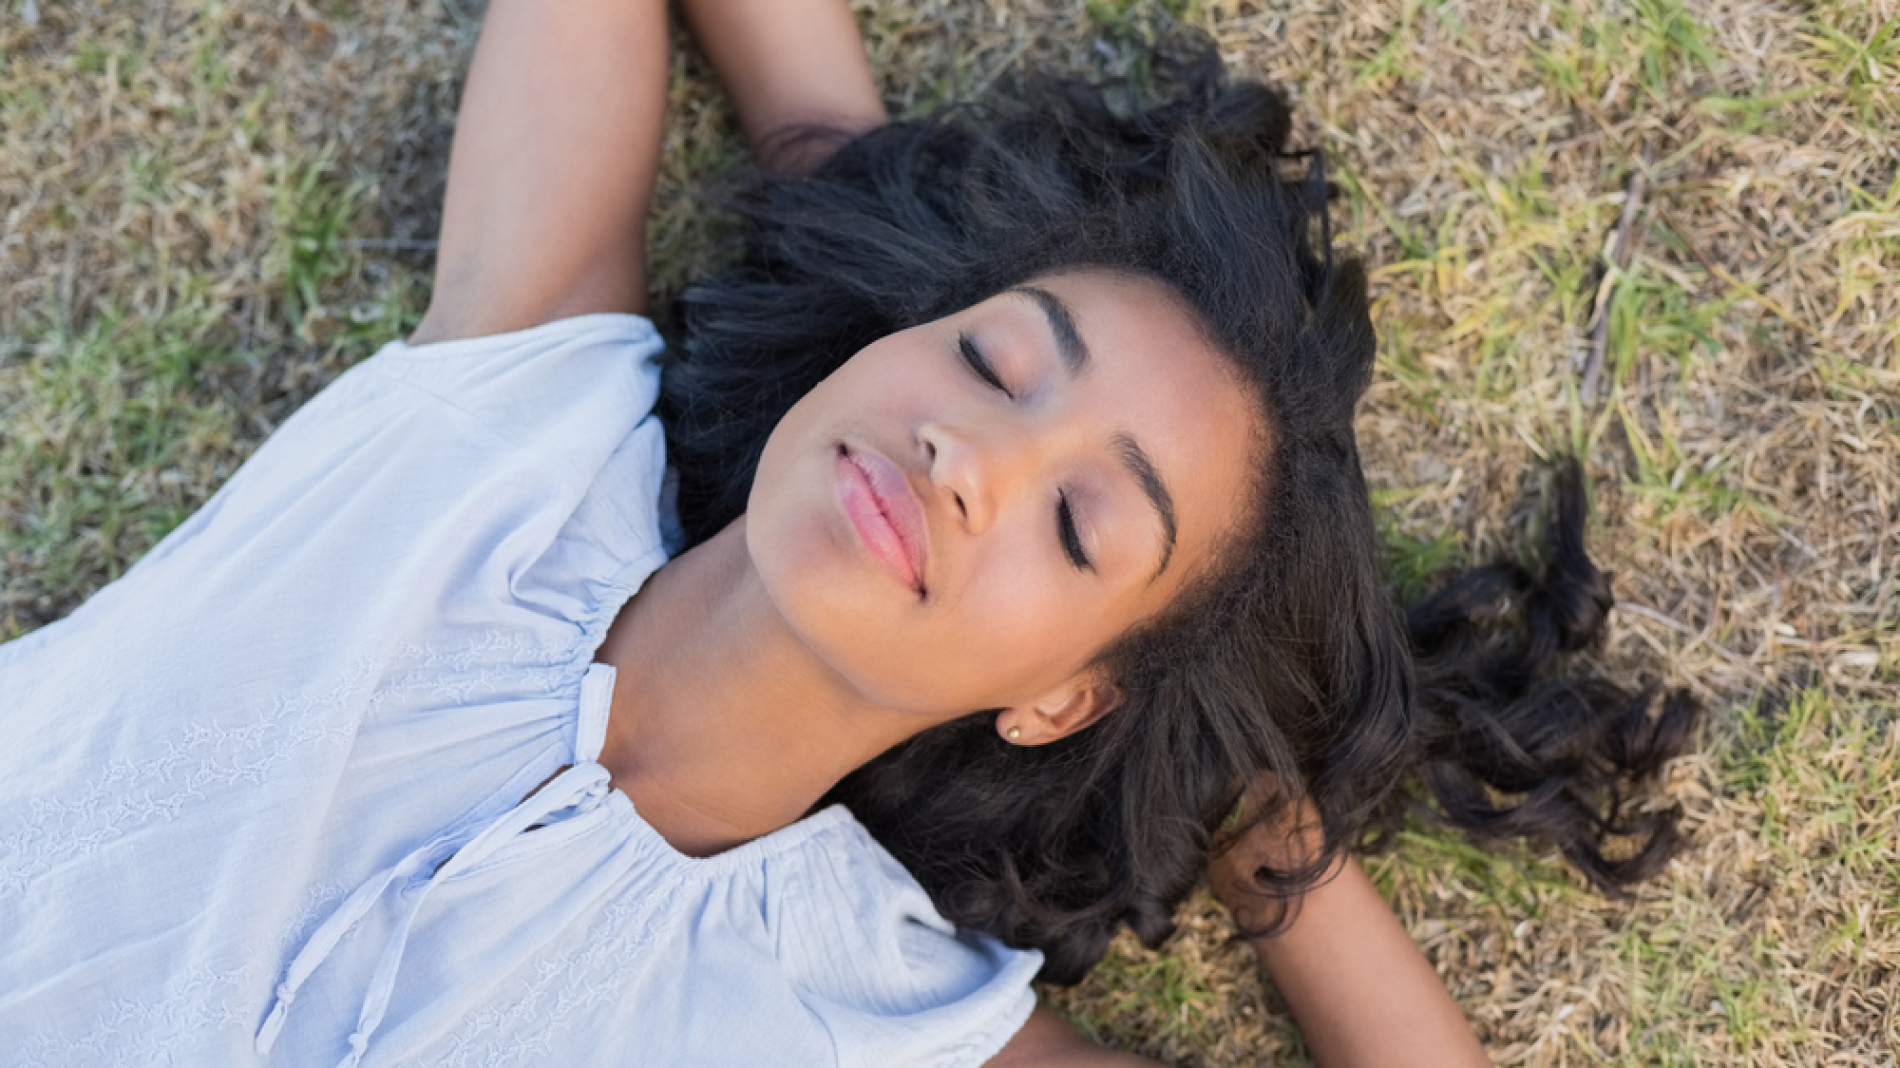 A young woman sleeping on the ground